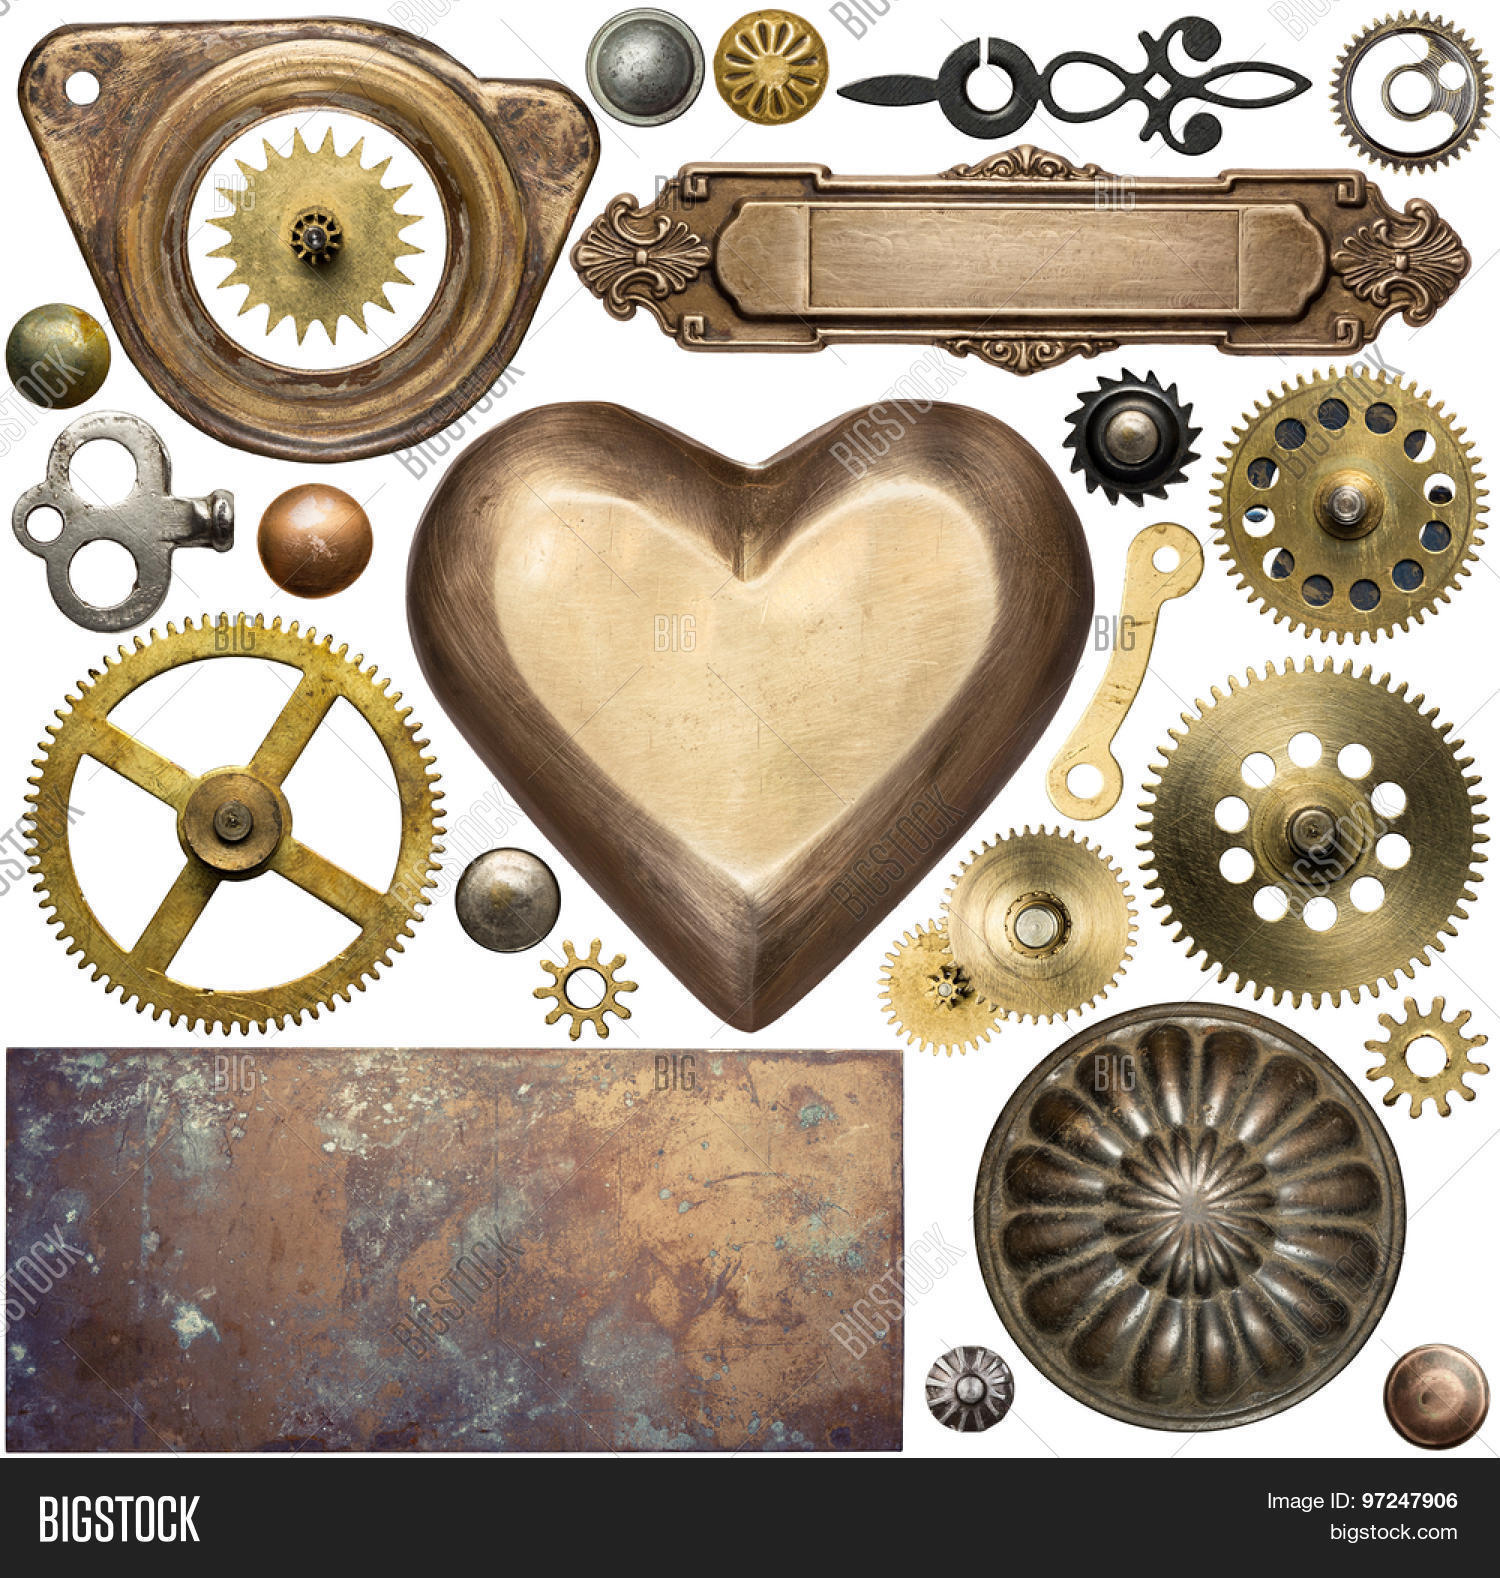 steampunk design elements images